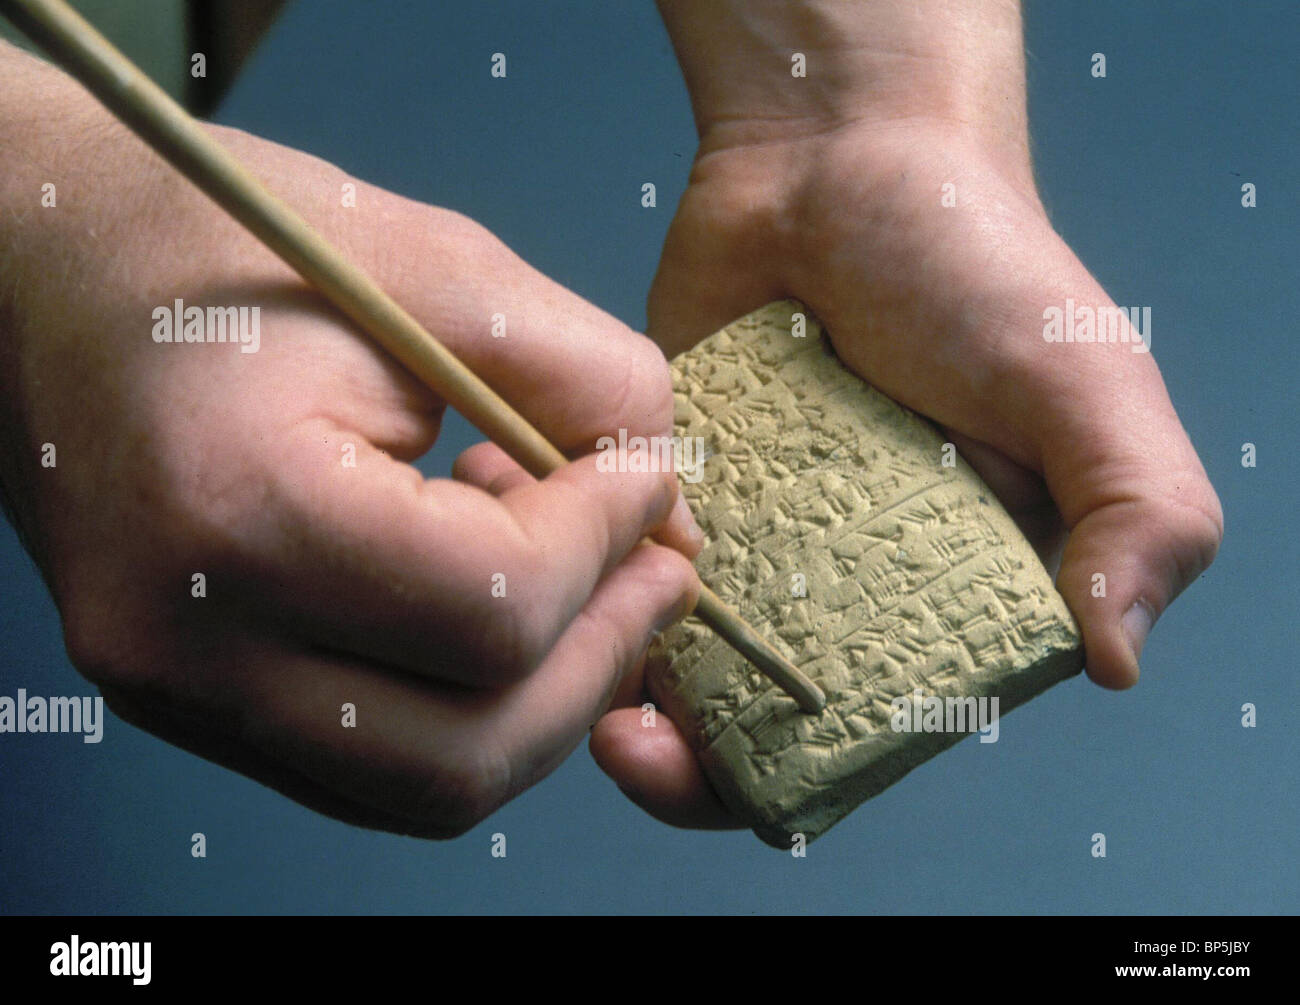 3739. WRITING A CUNIFORM TABLET BY PRESSING A WOODEN POINTER INTO WET CLAY - Stock Image